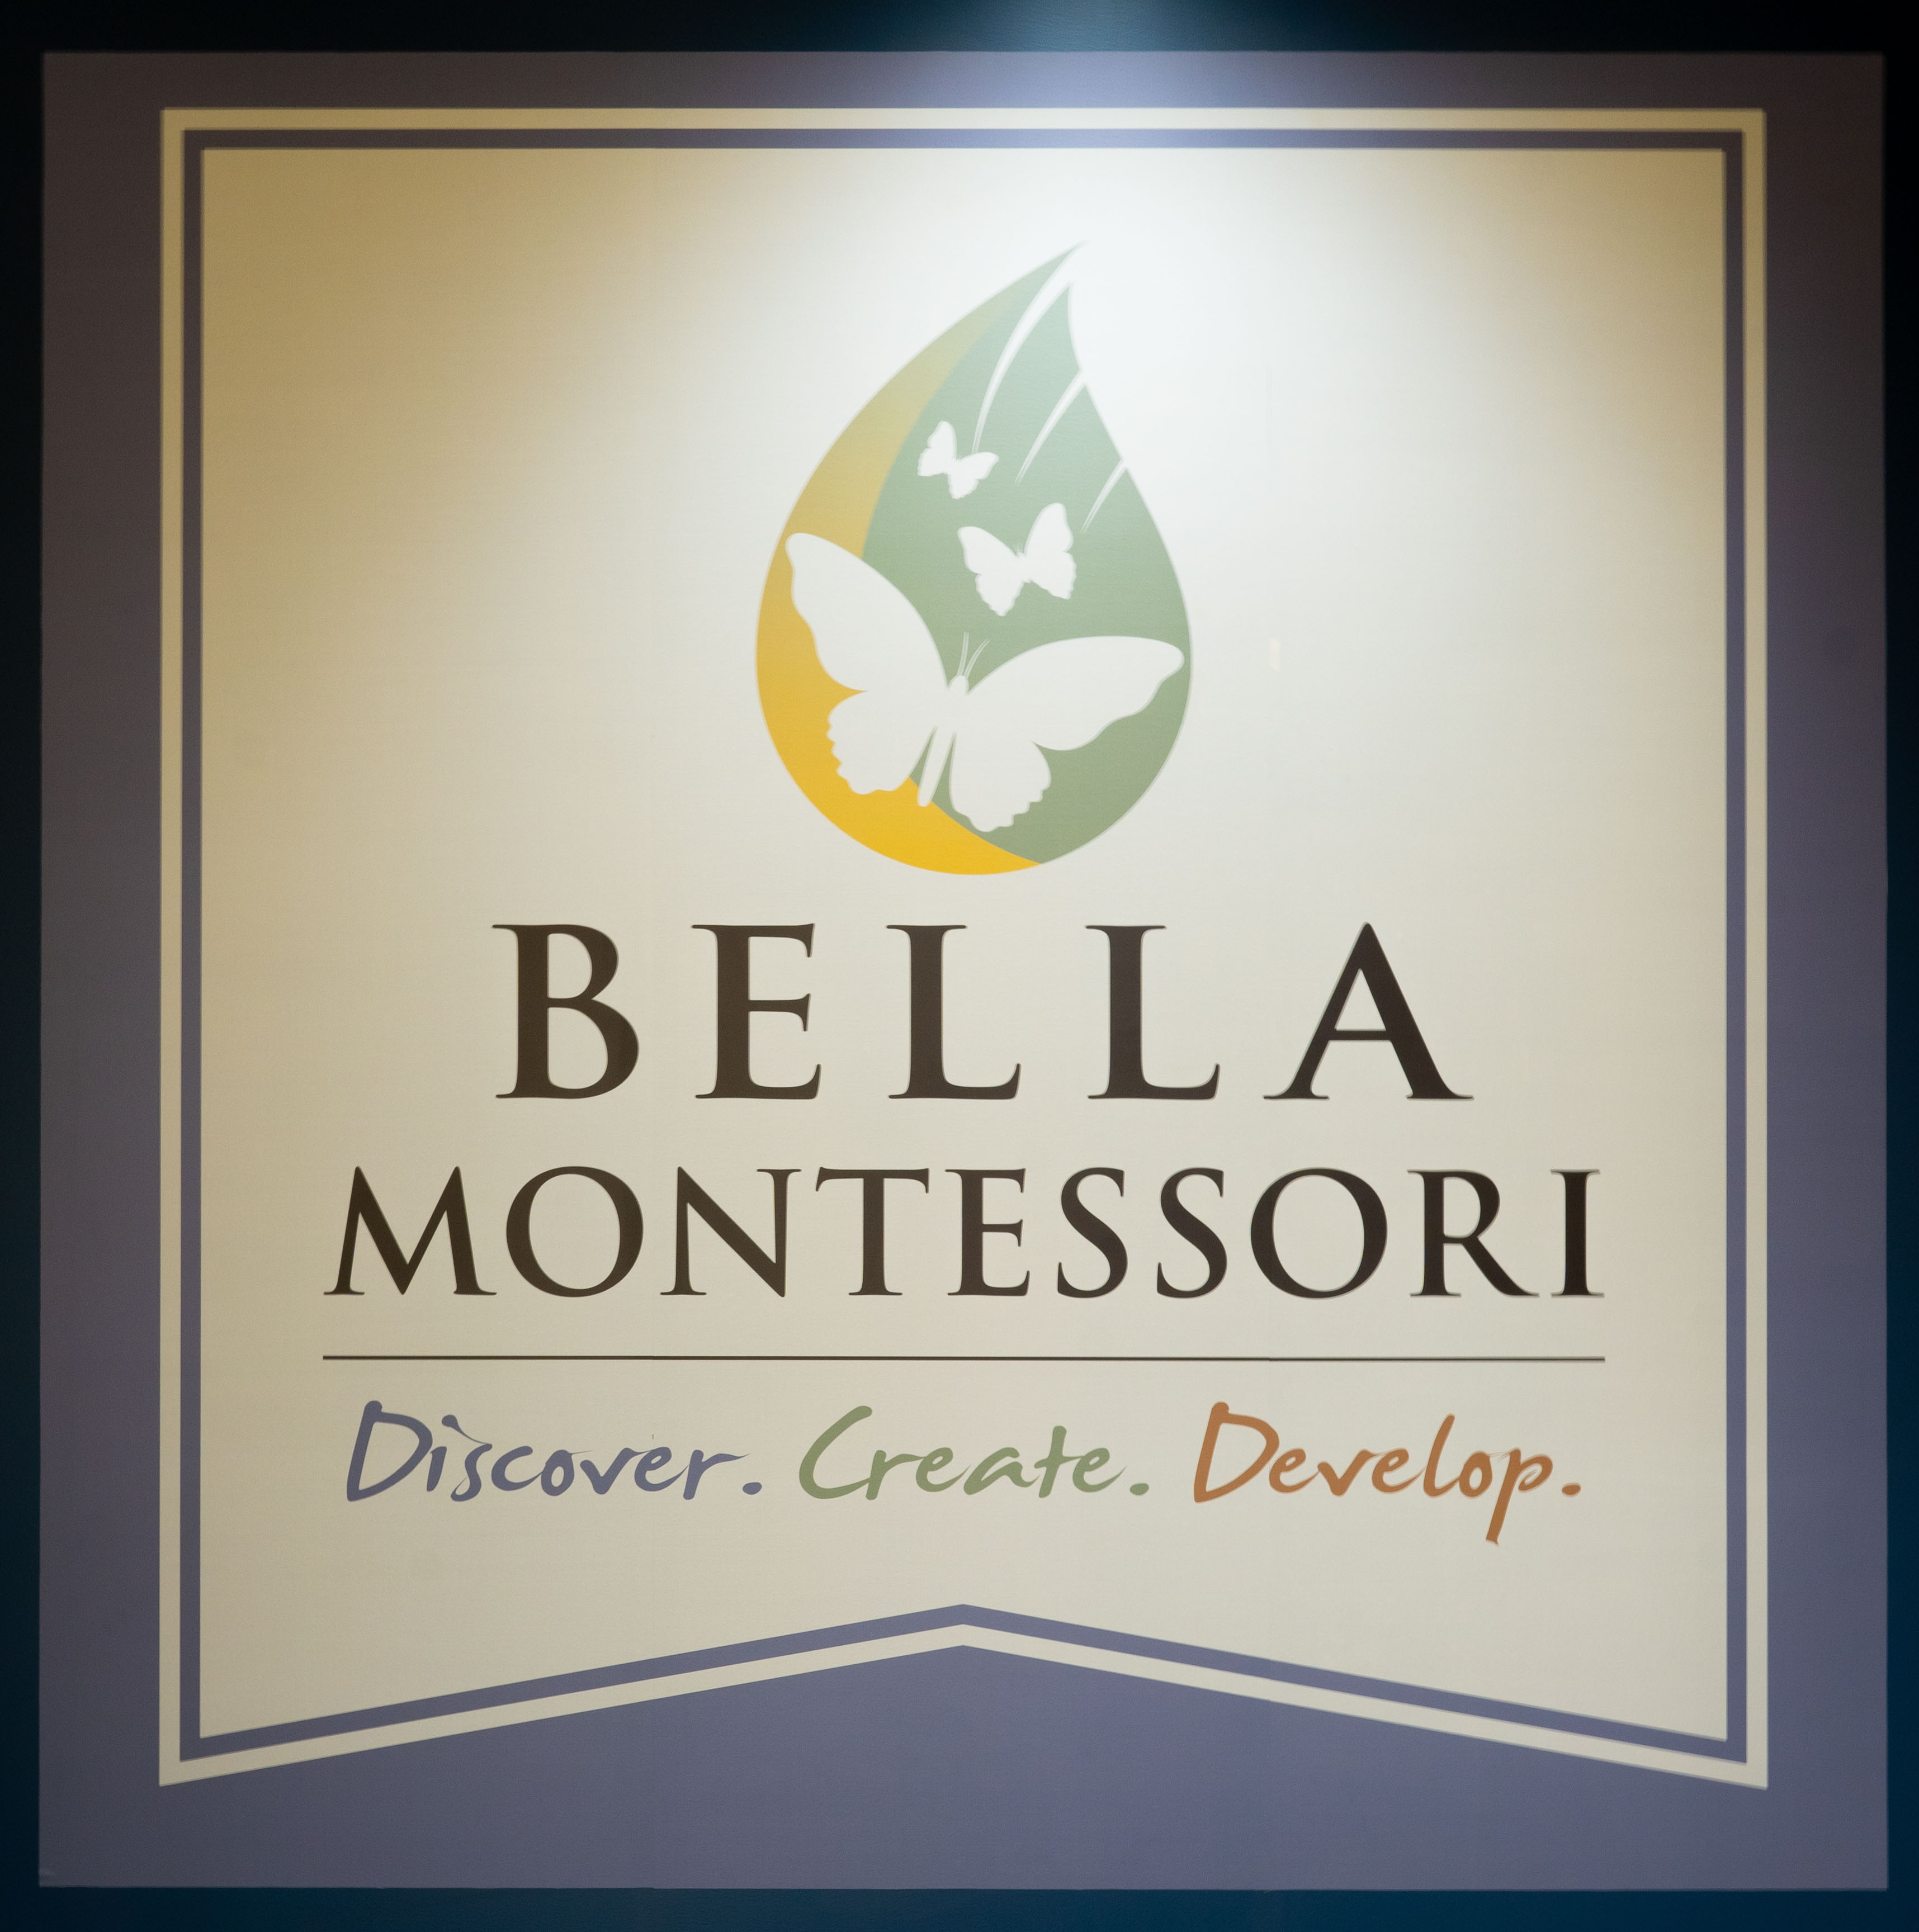 Bella Montessori